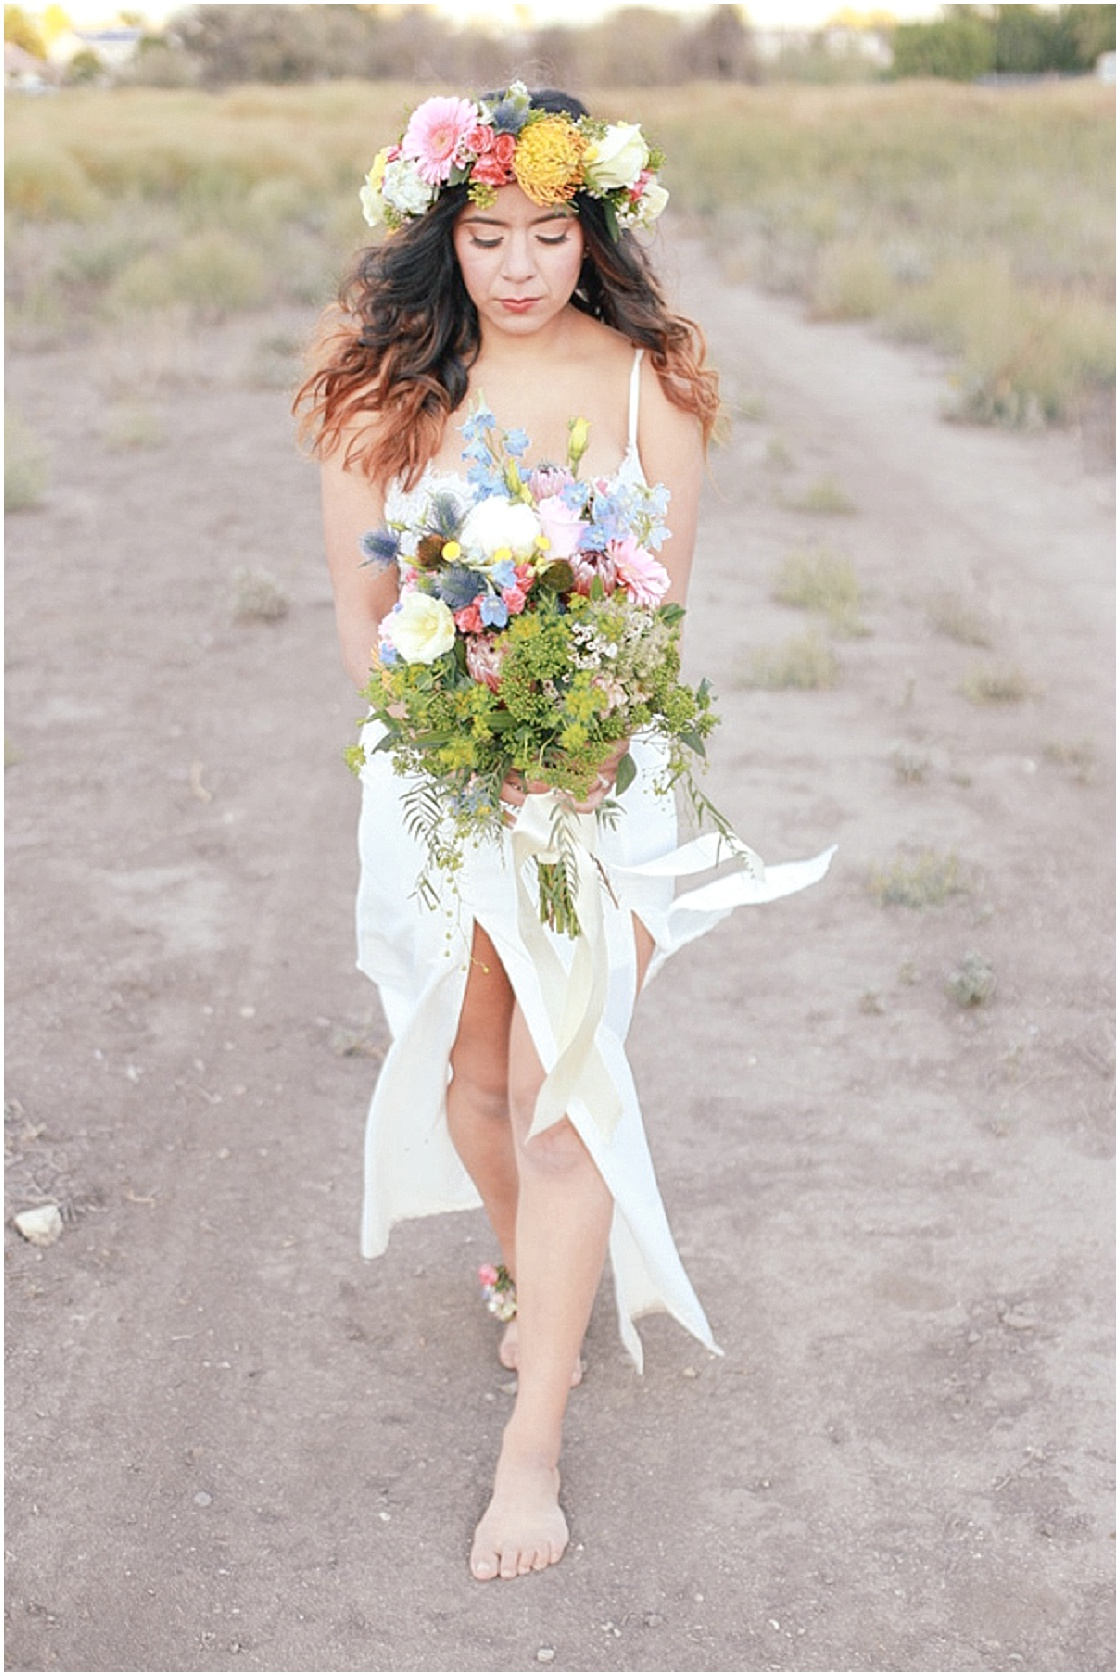 Bohemian Elopement | Bohemian Wedding | Elle Lily Photography & Videography | Joy Wed blog | http://www.joy-wed.com